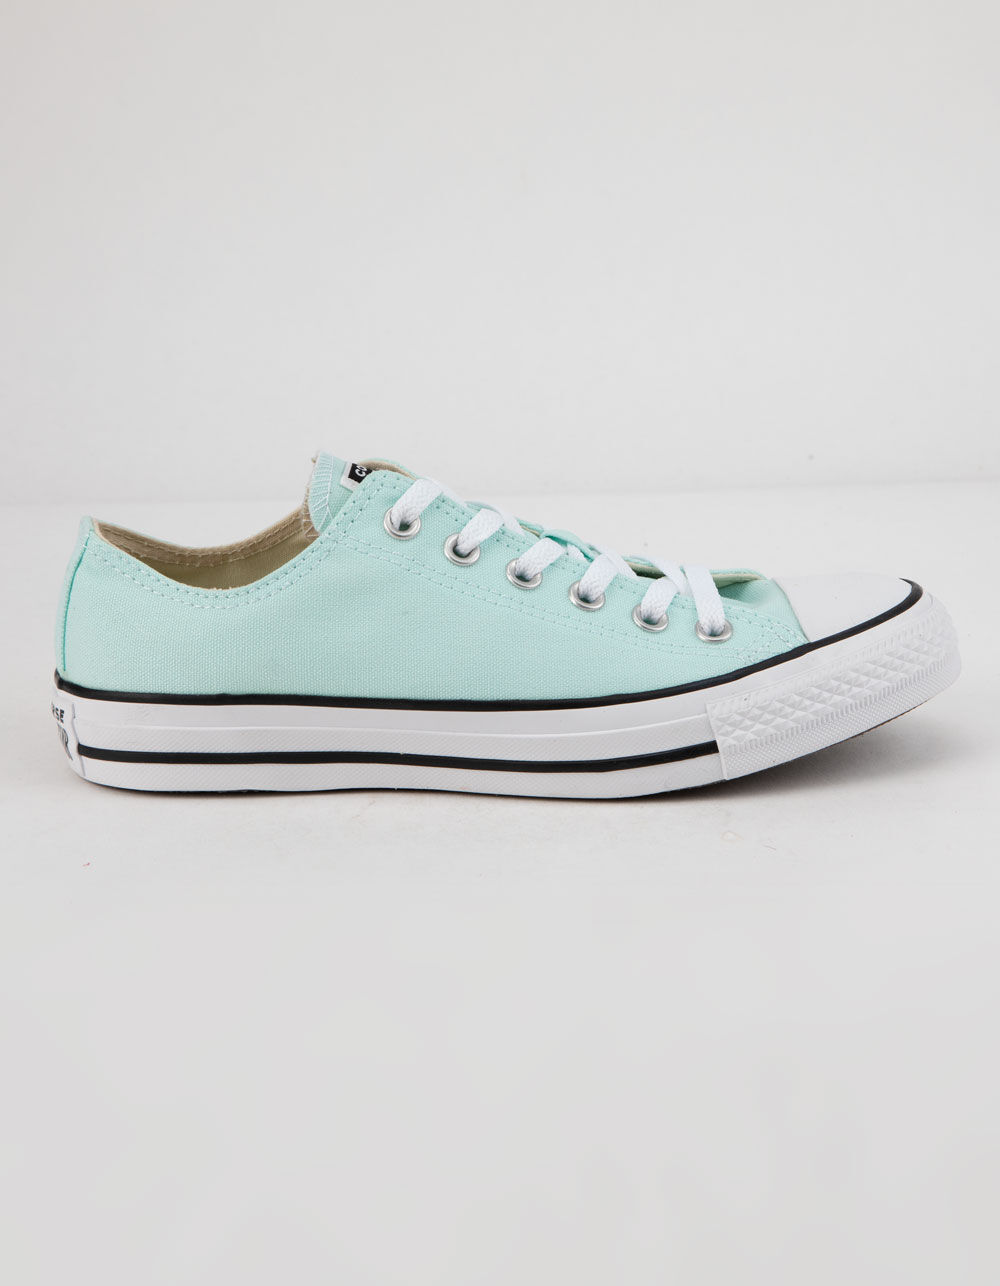 CONVERSE Chuck Taylor All Star Seasonal Color Teal Tint Low Top Shoes